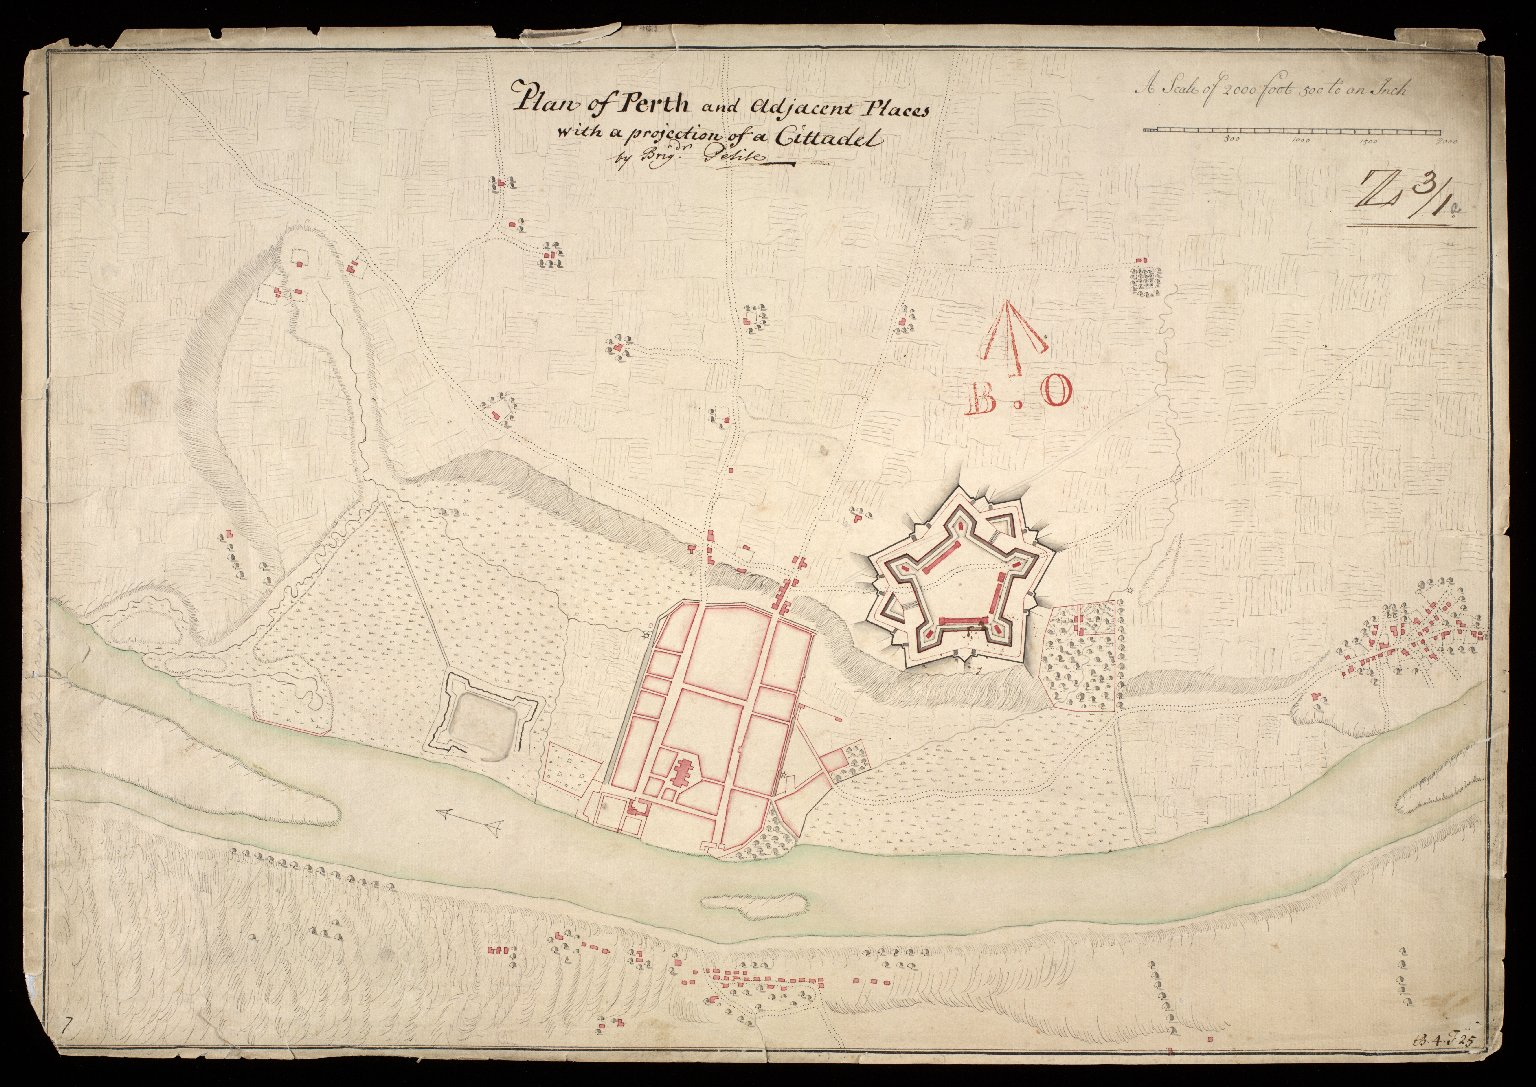 Plan of Perth and adjacent places : with a projection of a cittadel [1 of 1]